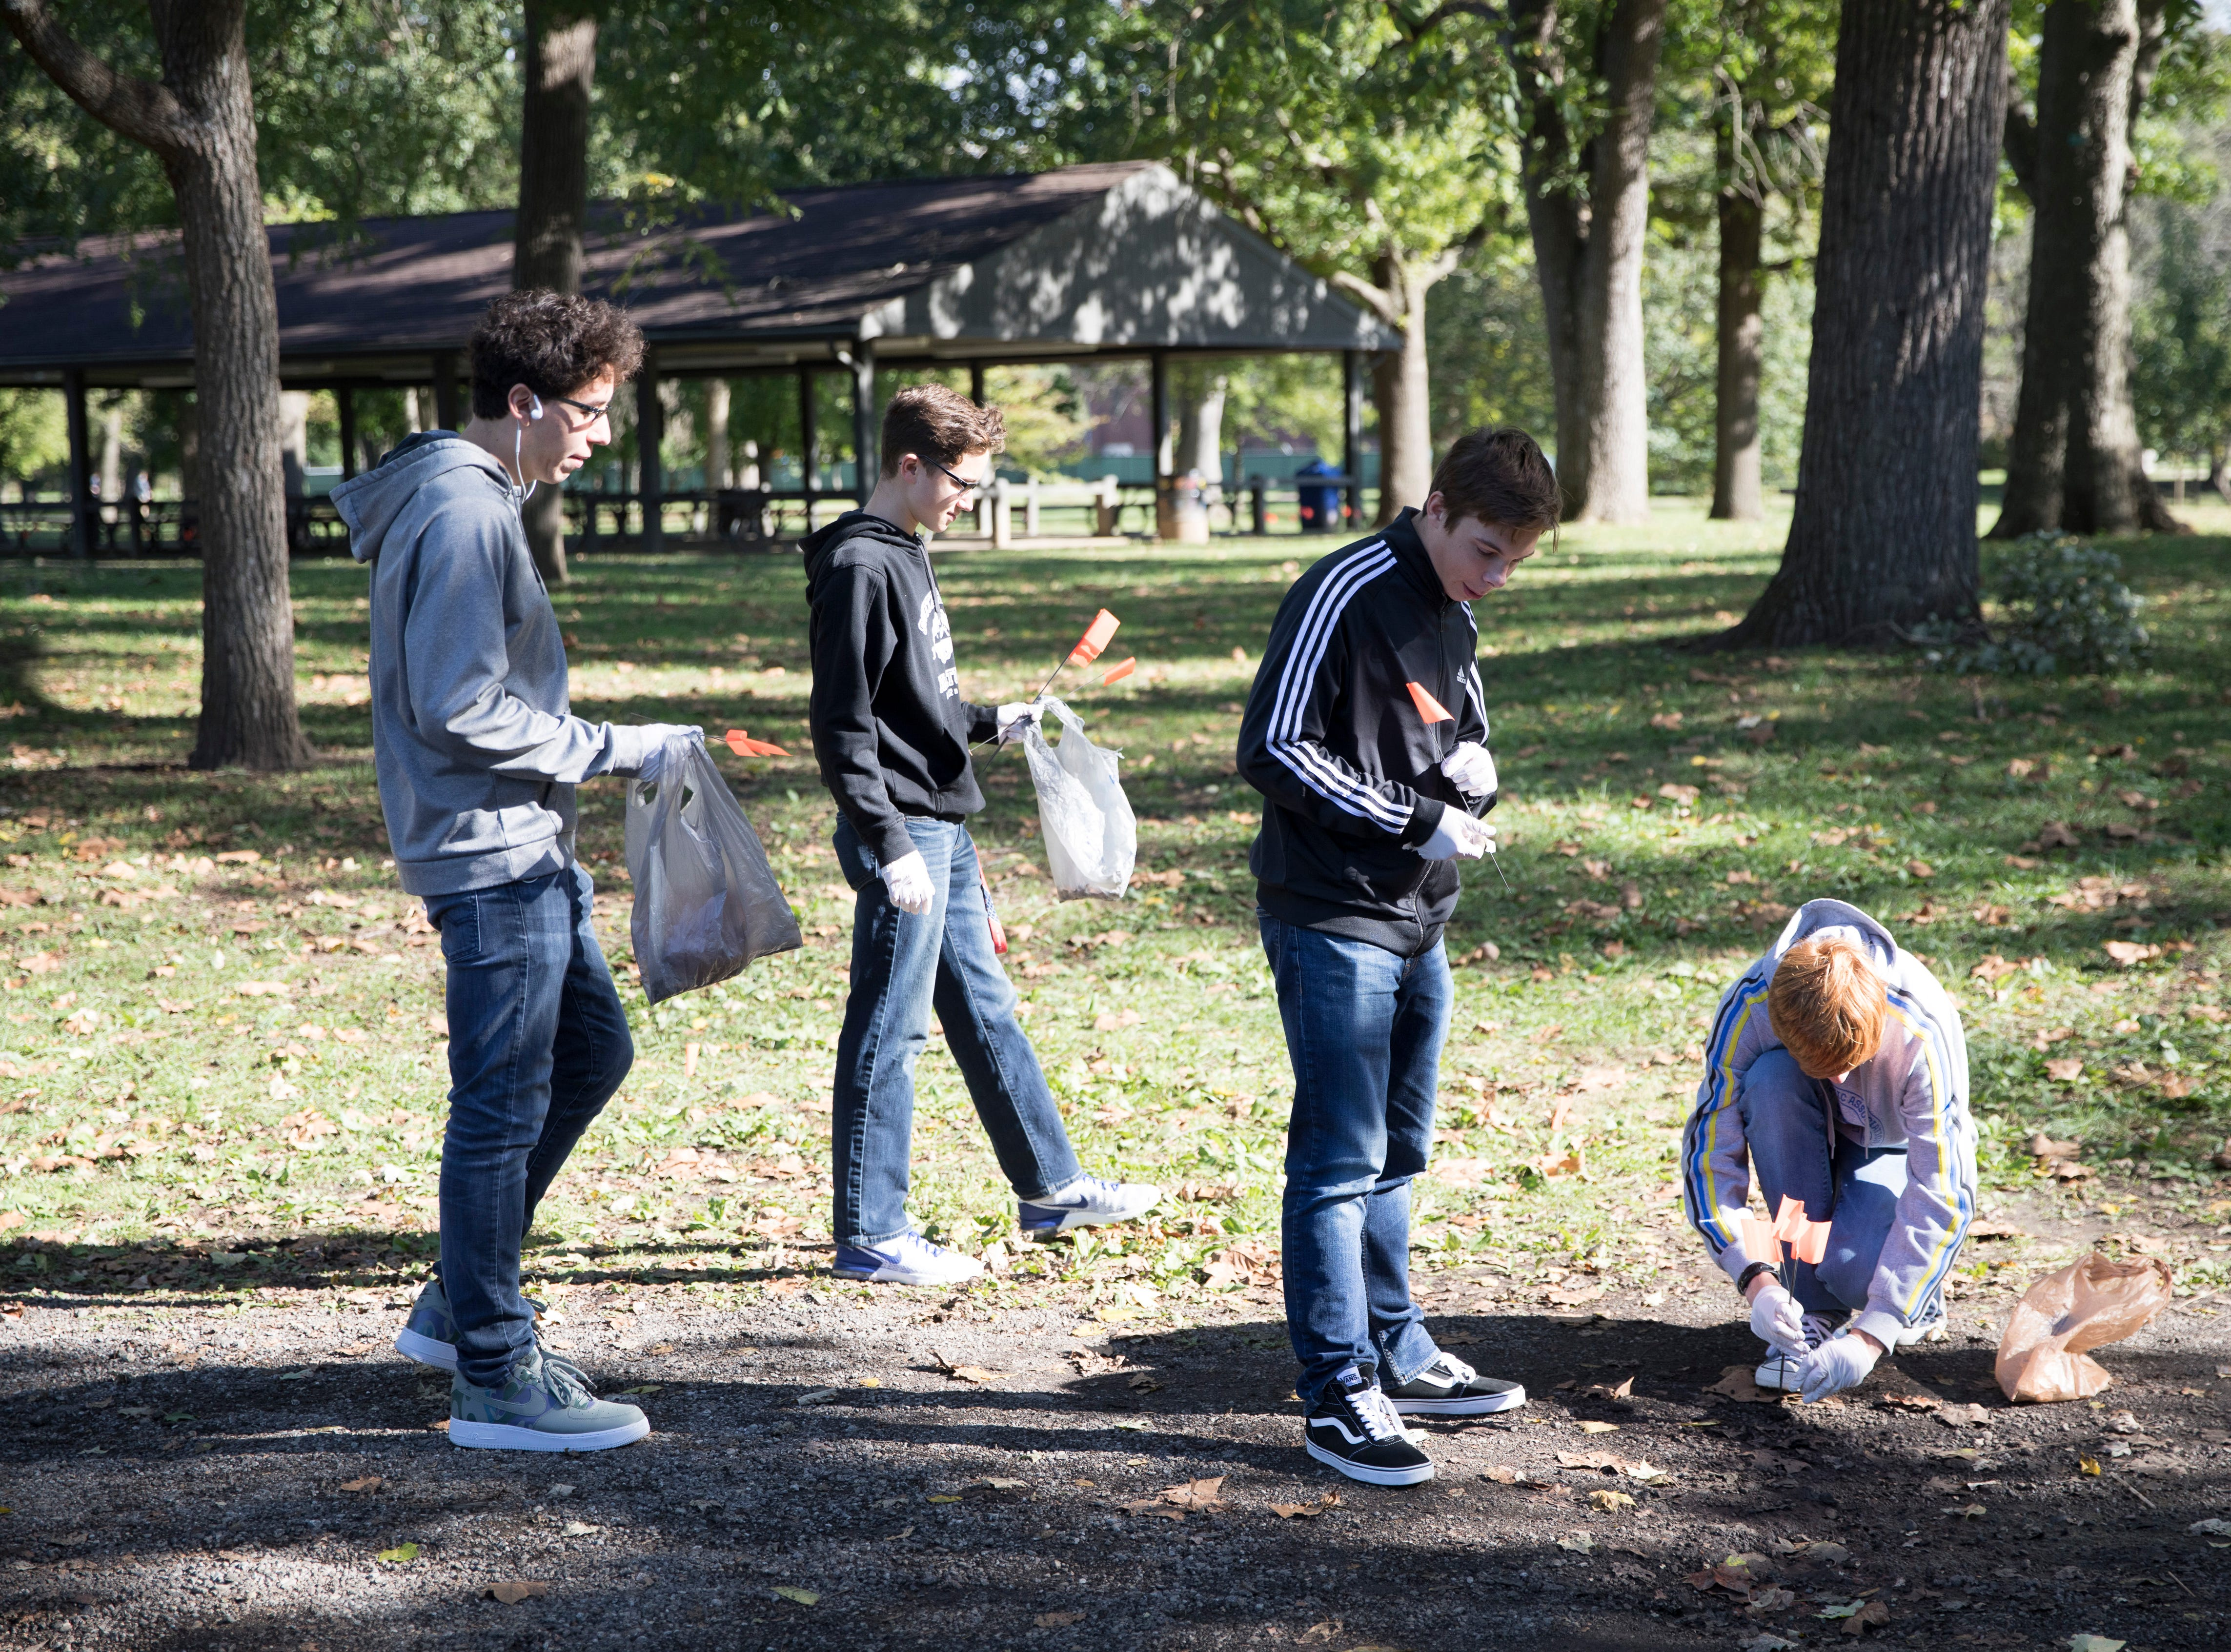 To illustrate how cigarette smoking is still an issue in today's society, about 160 students from Chillicothe High School's Keys to Success program spent an hour Wednesday morning at Yoctangee Park picking up cigarette butts and replacing them with orange flag markers to help build momentum for the Great American Smokeout in November, which is sponsored by the American Cancer Society.